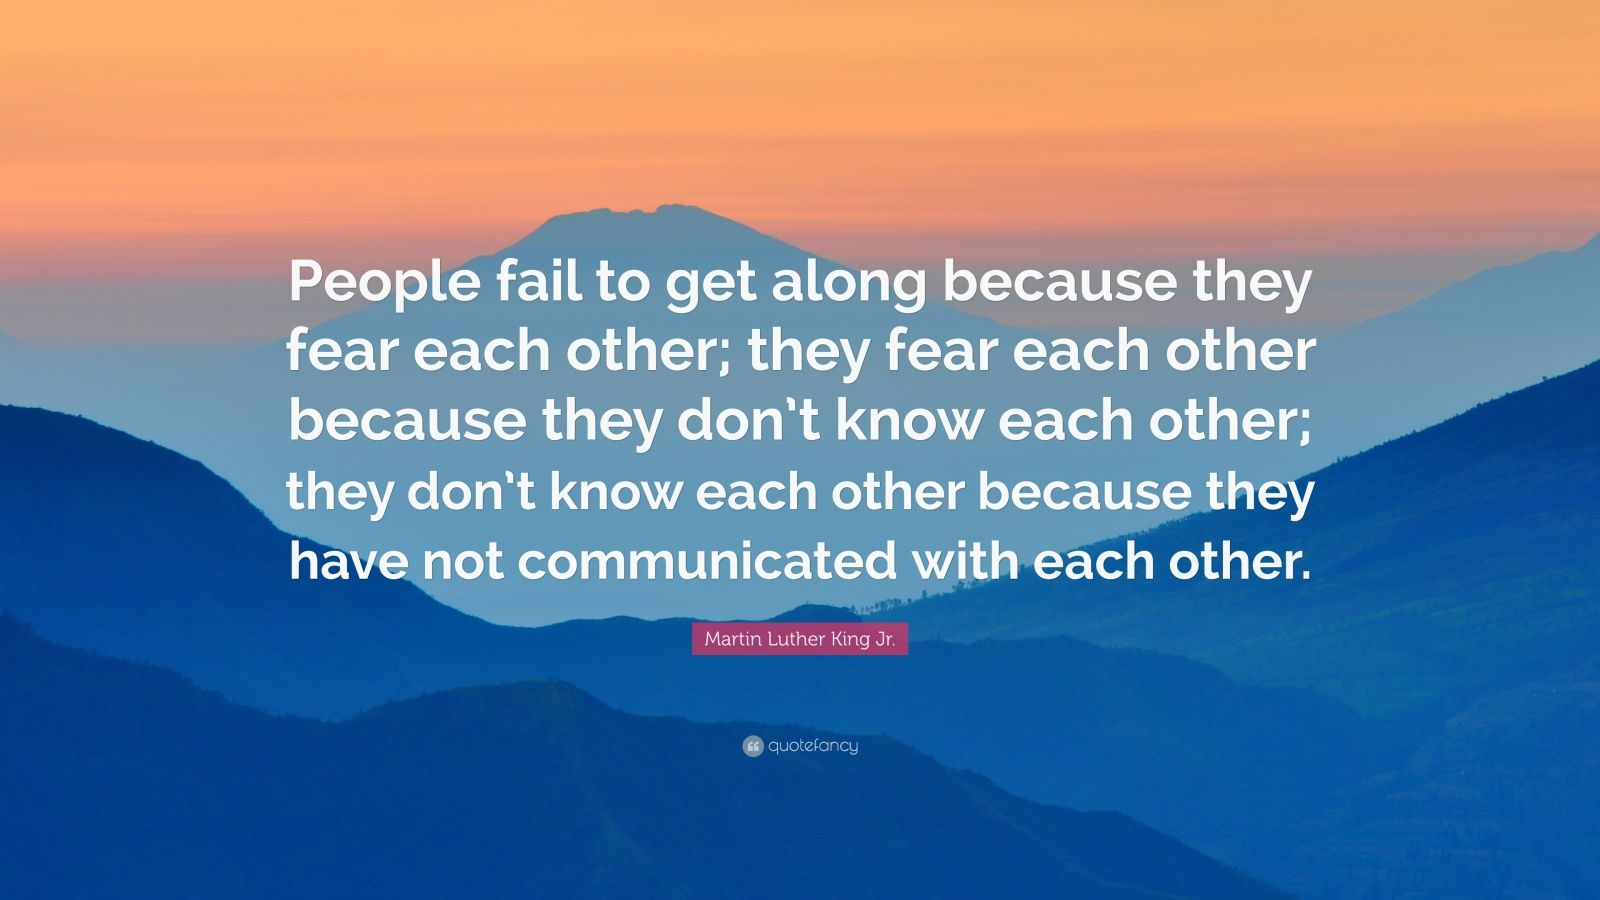 """Martin Luther King Jr. Quote: """"People fail to get along because they fear each other; they fear each other because they don't know each other; they don't know each other because they have not communicated with each other."""""""